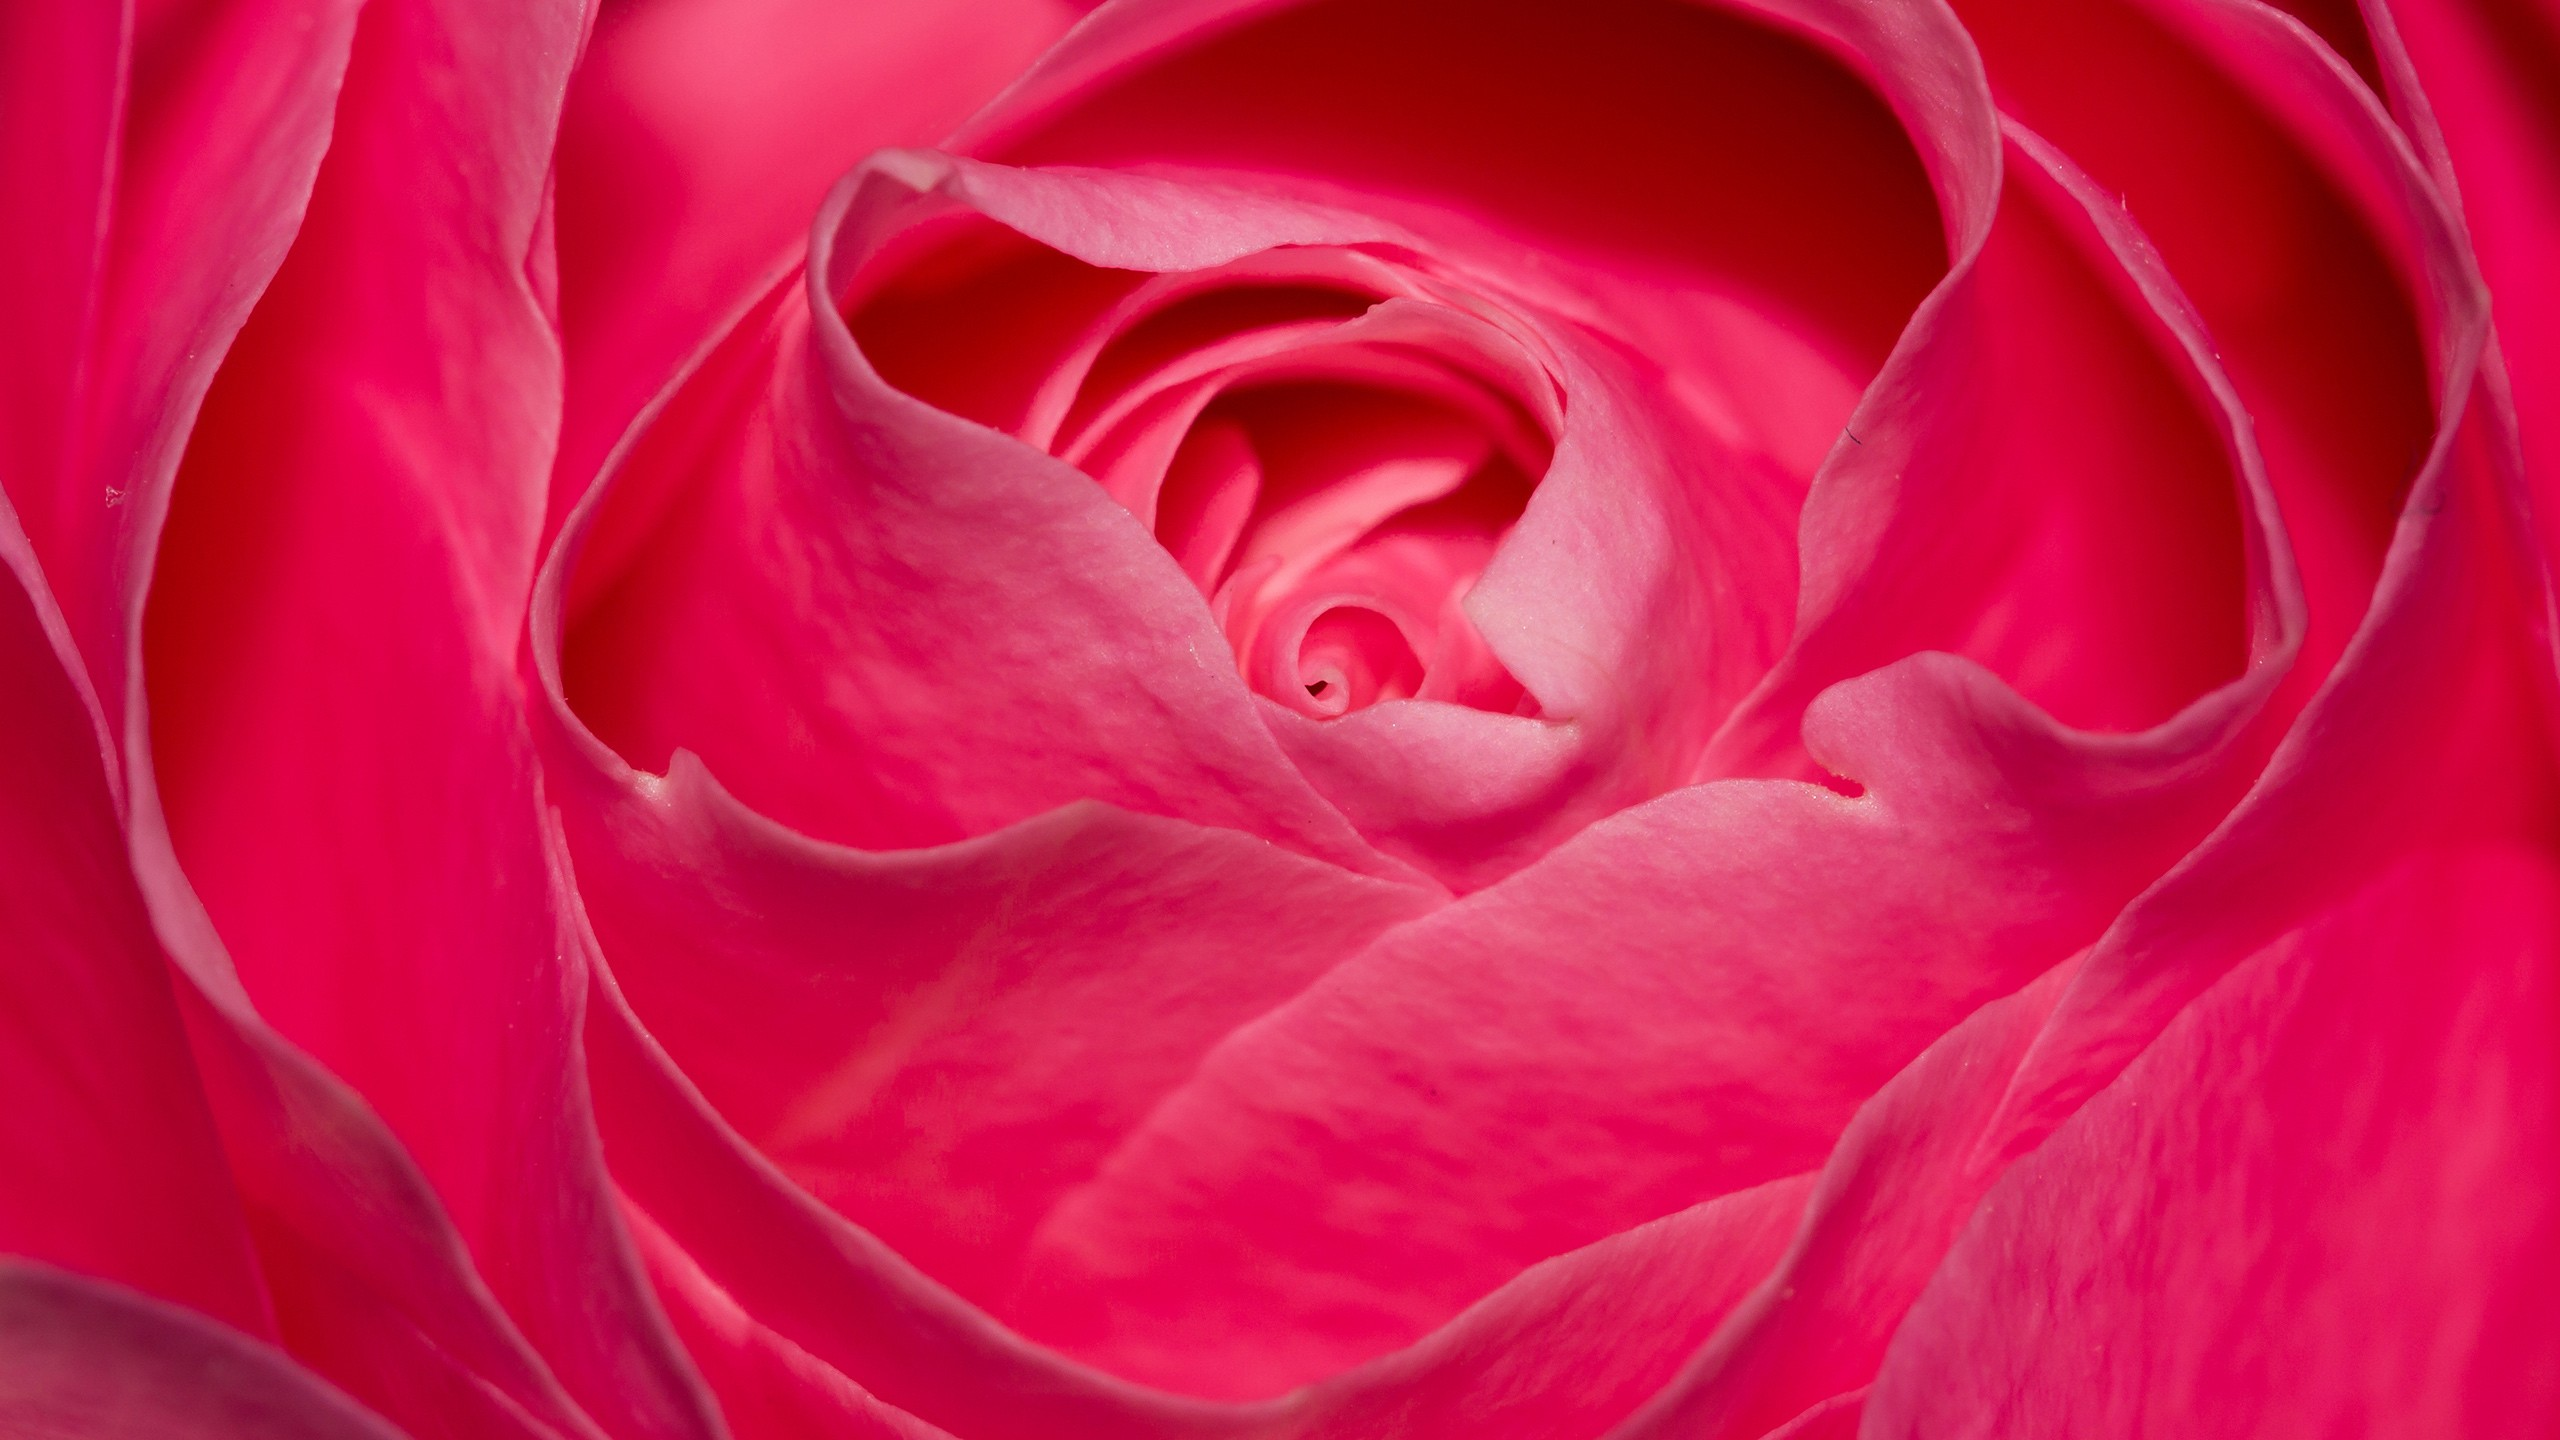 Pink Rose 3d Wallpaper Perfect Pink Rose Wallpapers Hd Wallpapers Id 18379